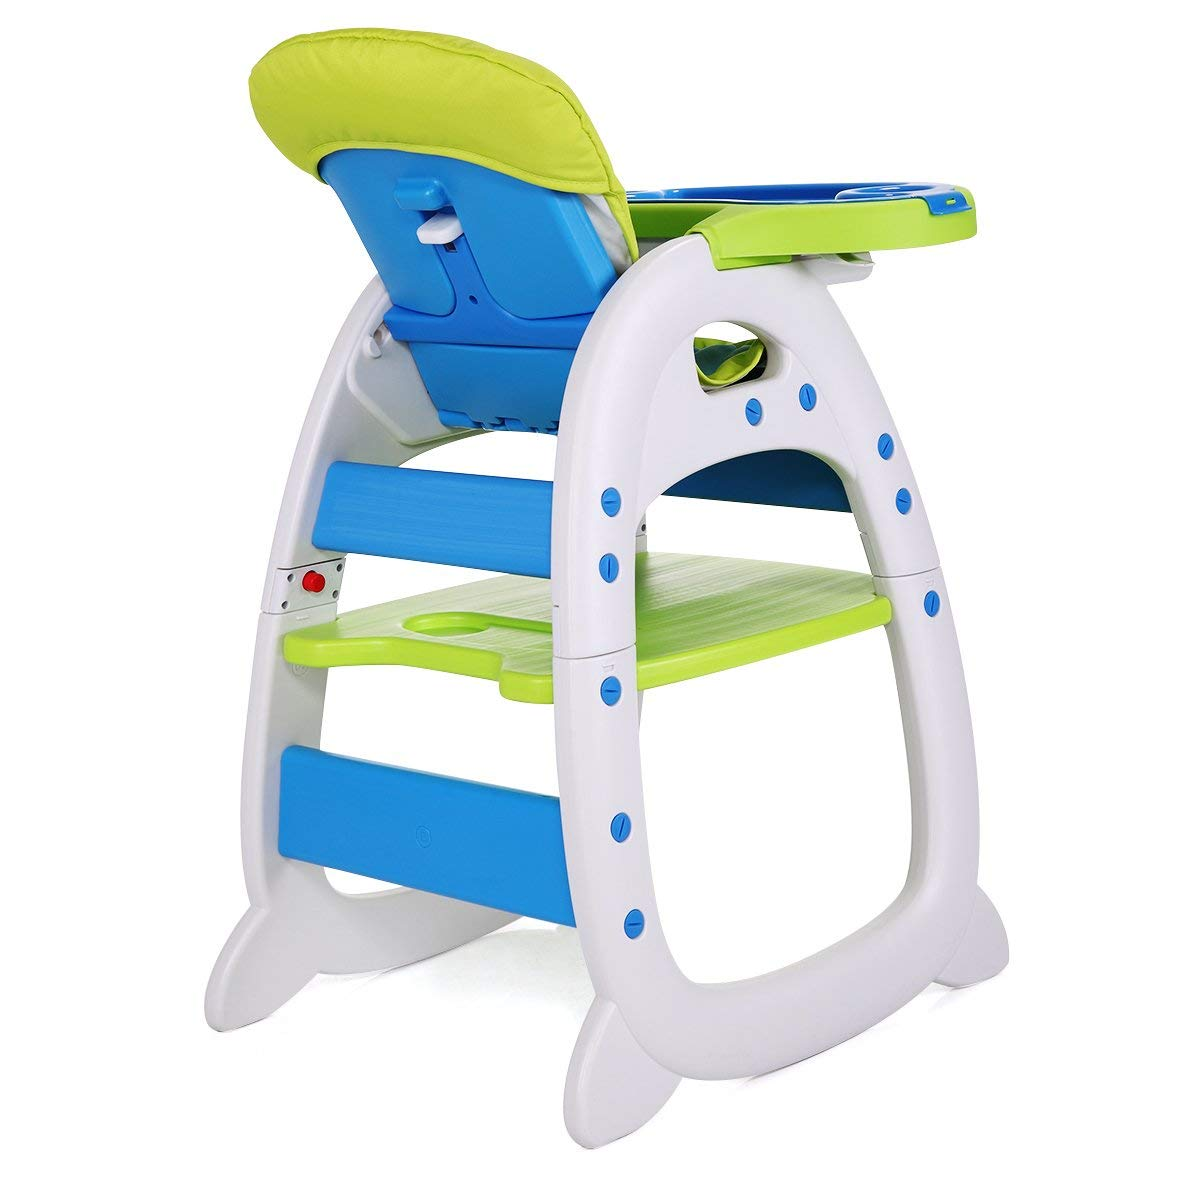 Sandinrayli 3 in 1 Toddler Highchairs Booster Seats Convertible High Chair w//Feeding Tray Blue-Green